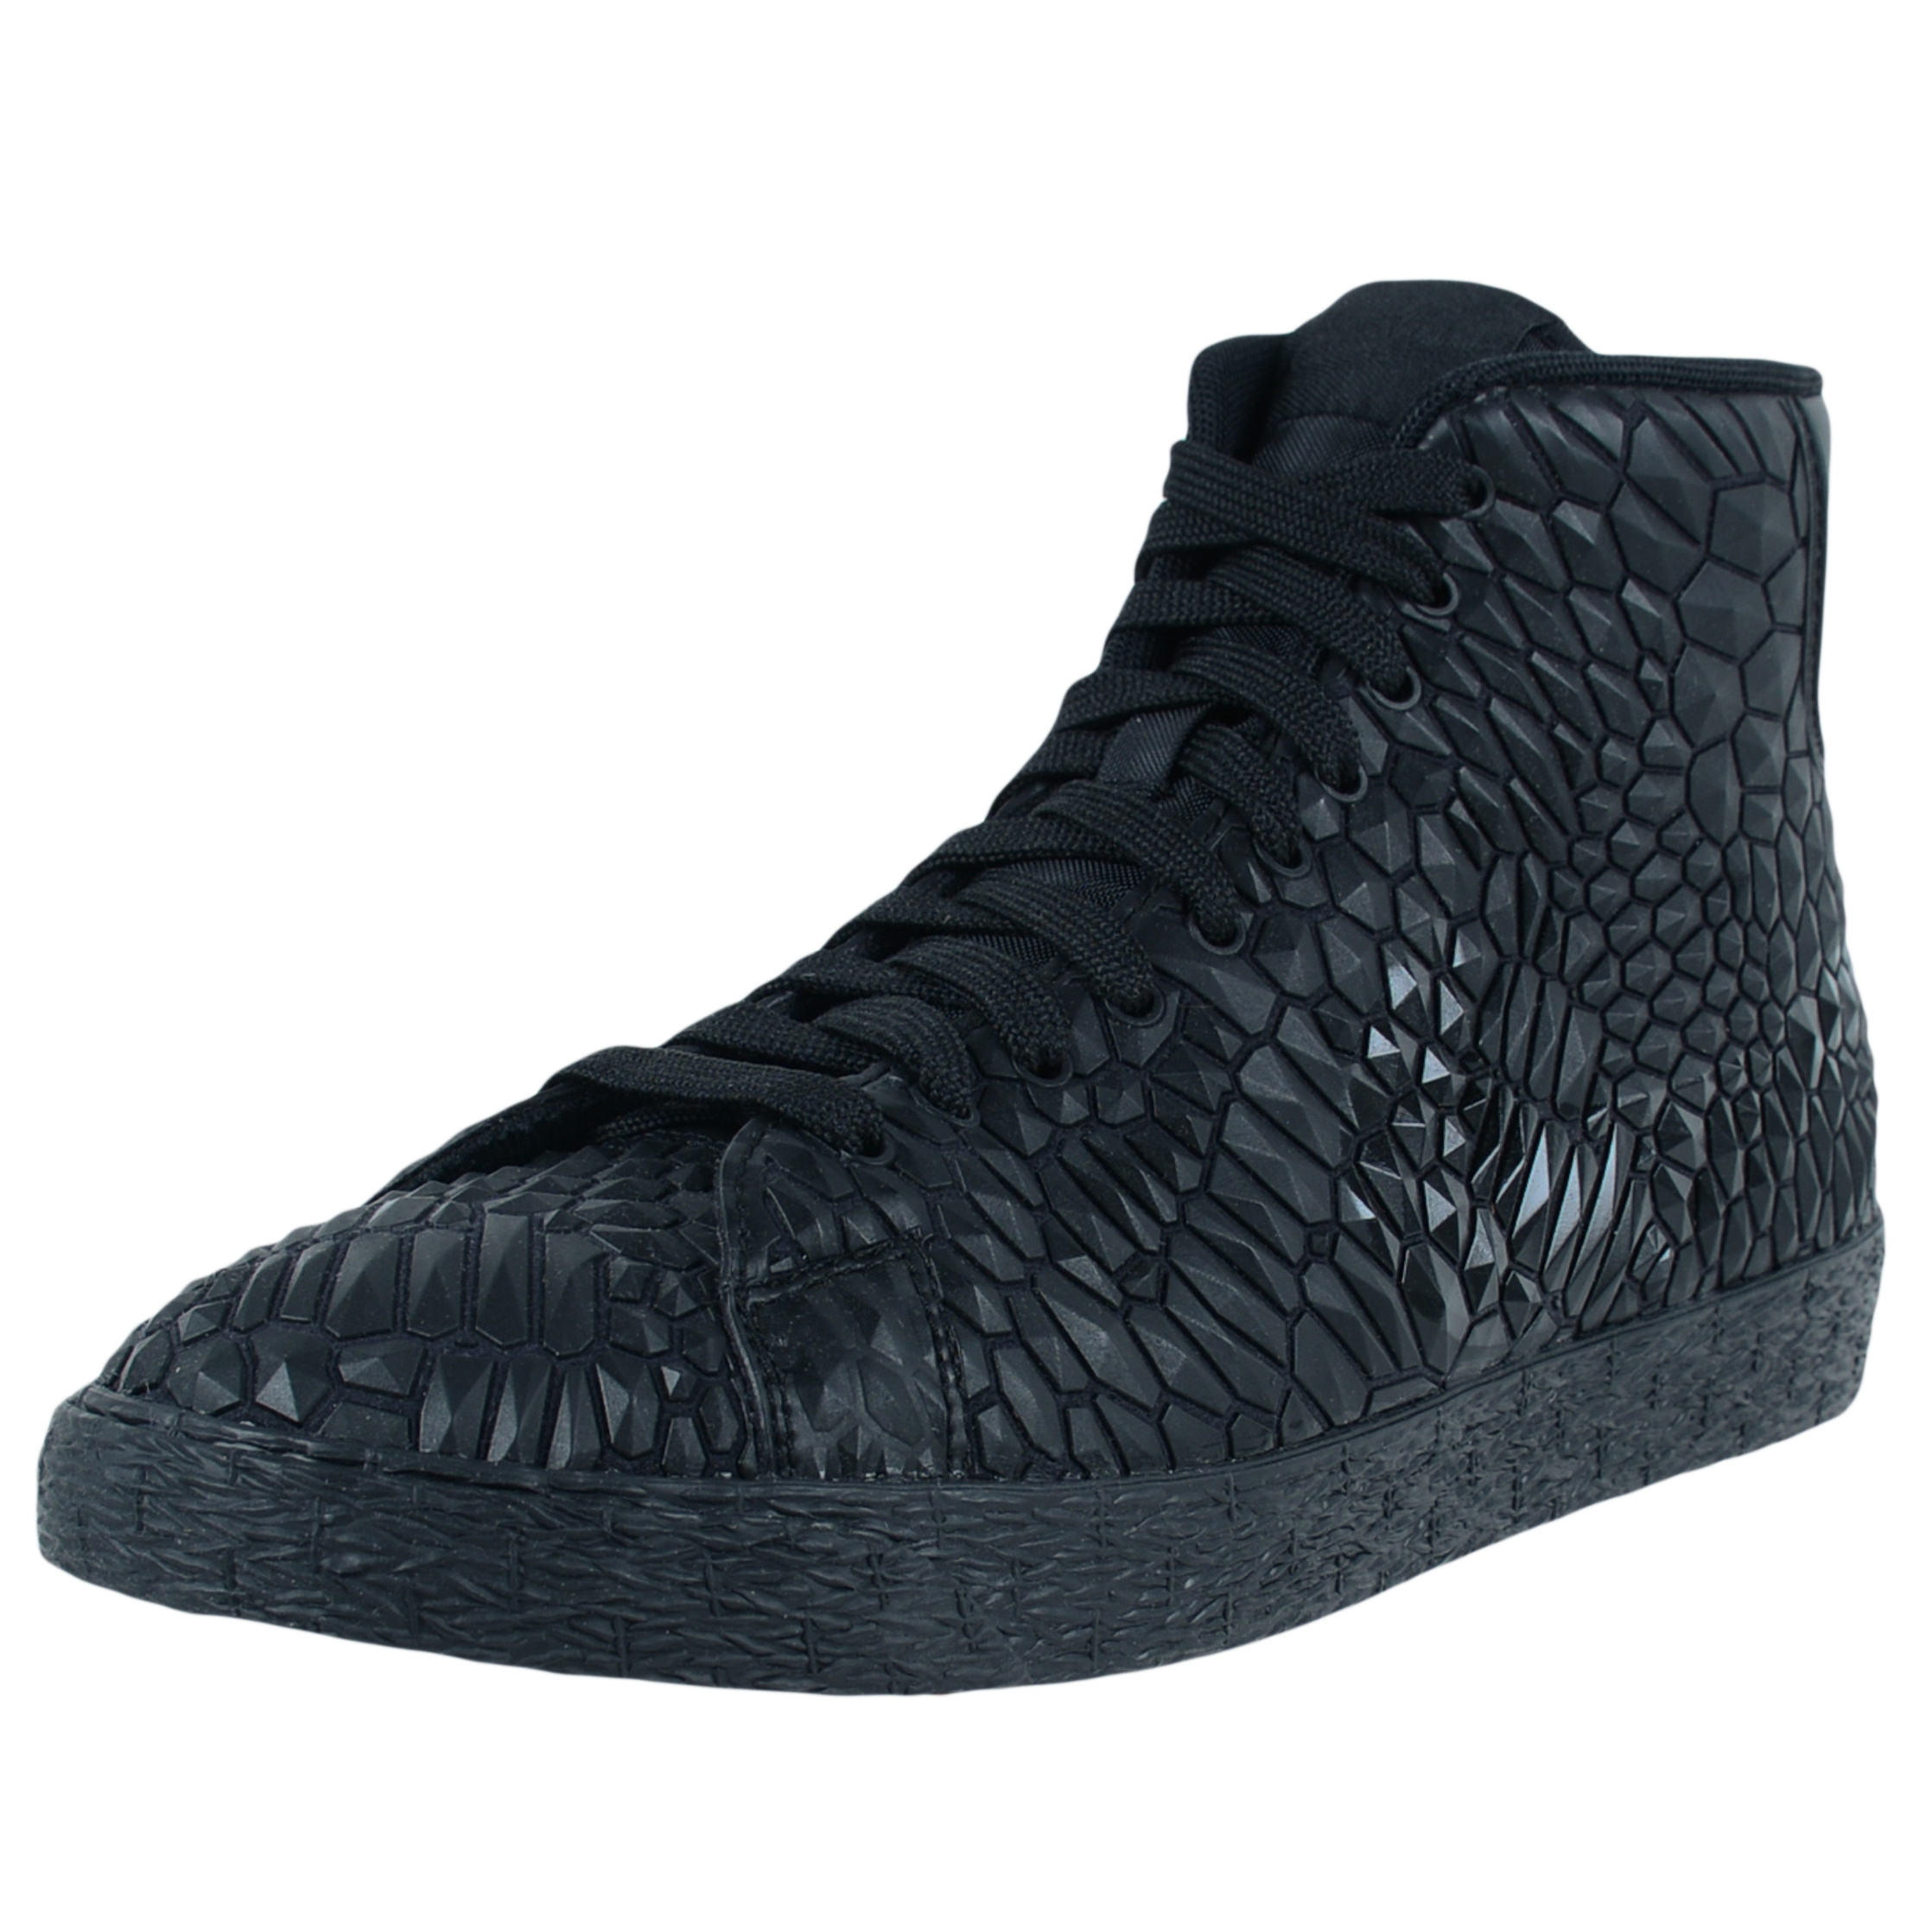 Nike WOMENS BLAZER MID DMB FASHION SNEAKERS BLACK BLACK B...